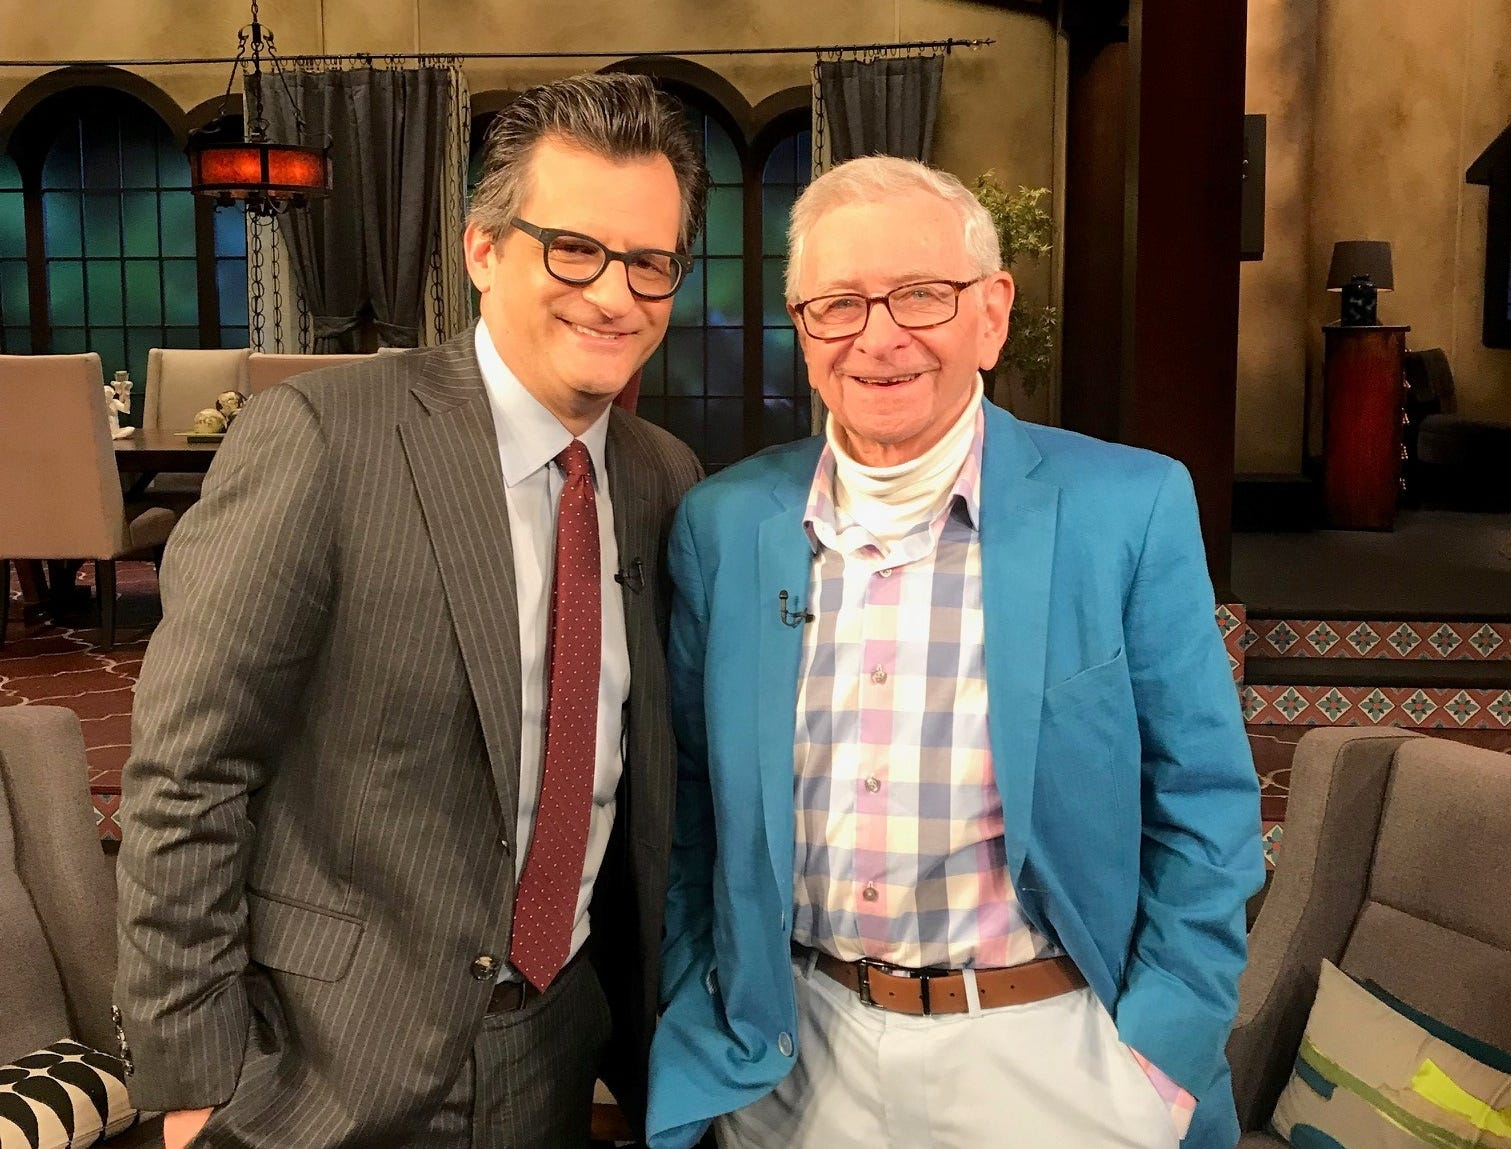 """Moe Resner, 88, of Edison is pictured with Turner Classic Movies host Ben Mankiewicz. On April 19, Resner will introduce 1942's """"The Major and the Minor,"""" the first favorite movie he saw starring his favorite actress, Ginger Rogers."""